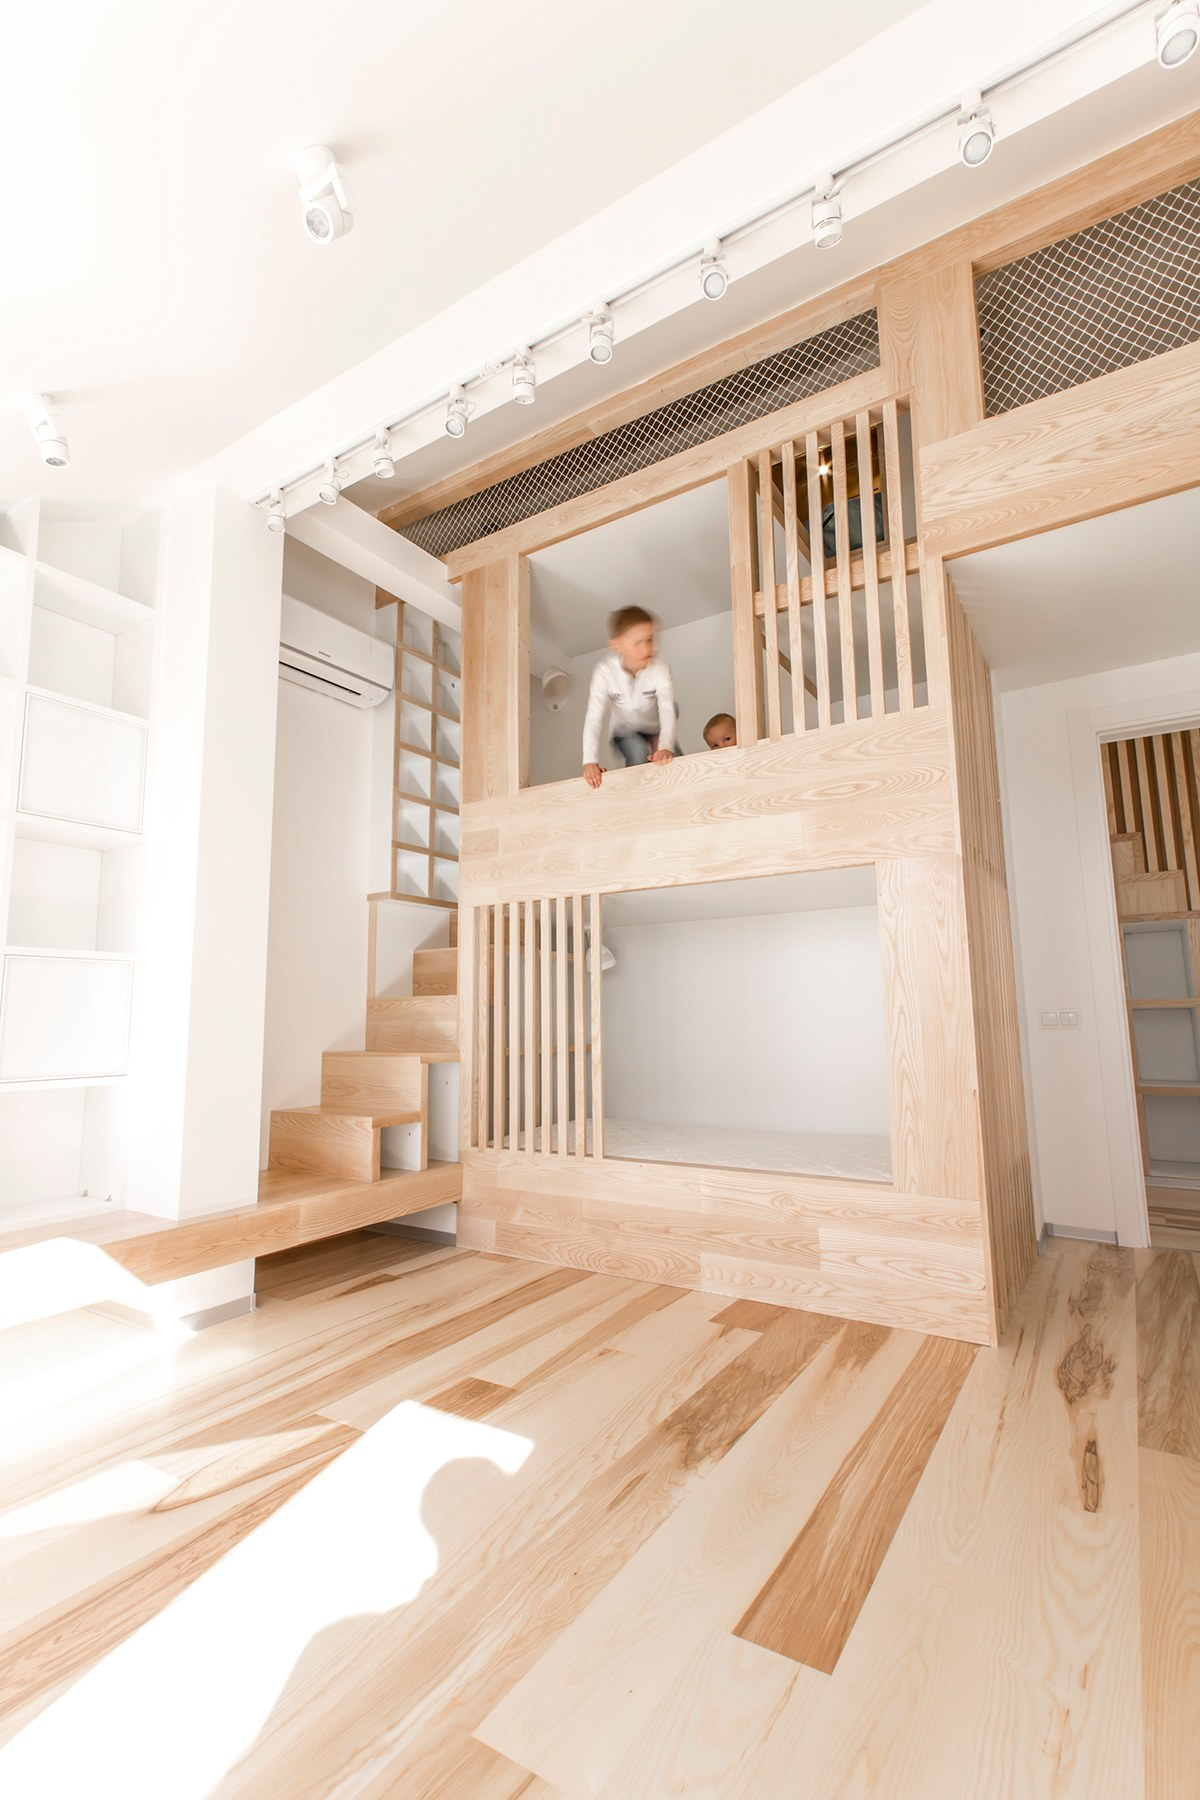 Kid Friendly Bedroom Design - A kid friendly apartment renovation by ruetemple architects